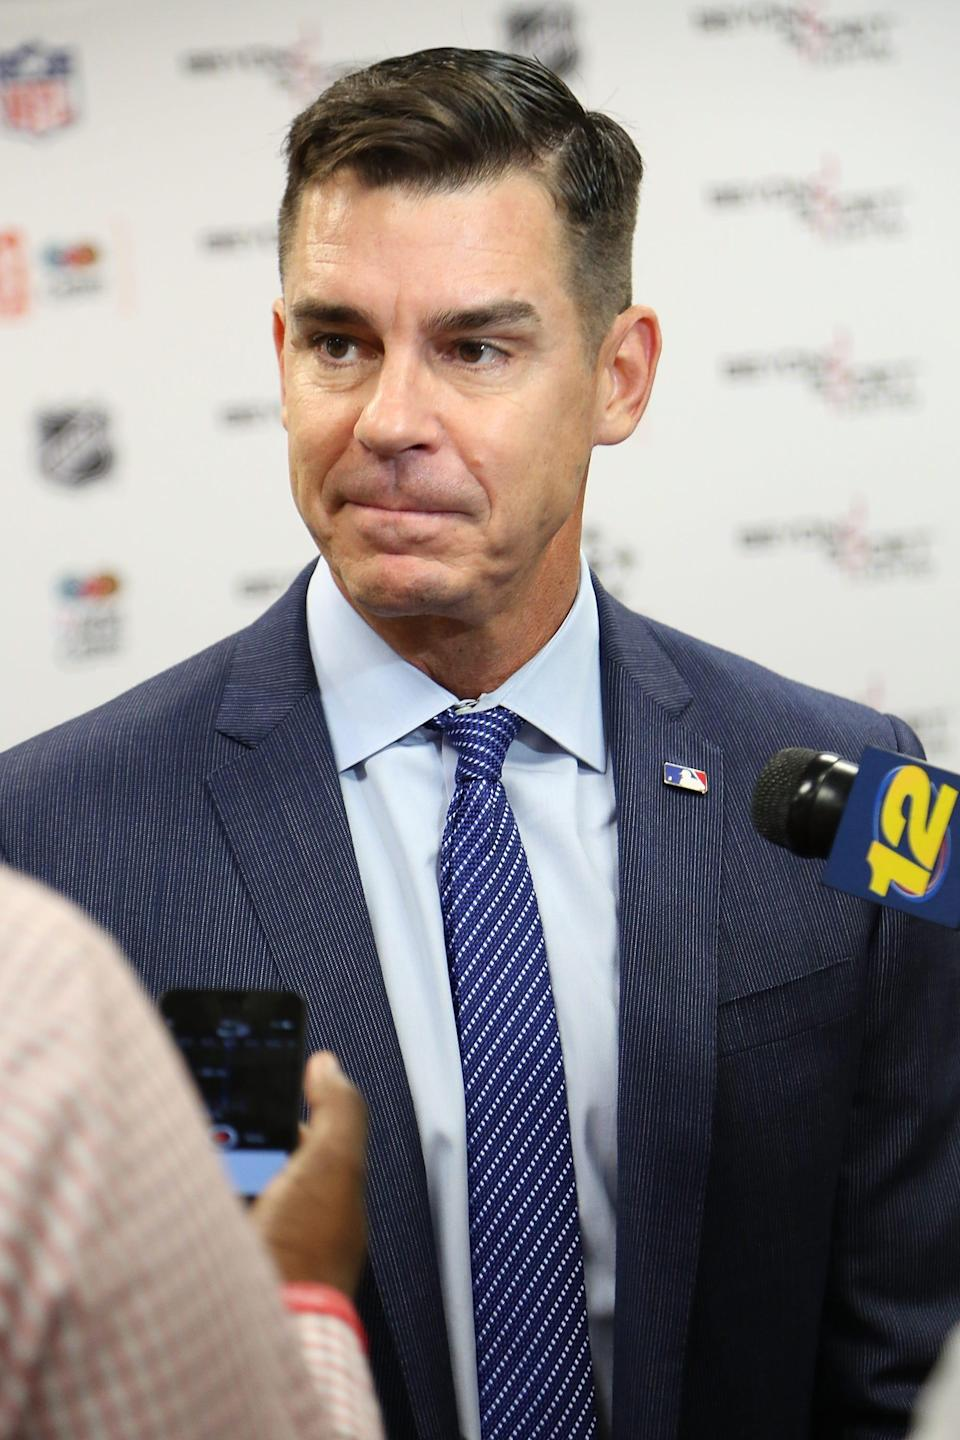 MLB vice president Billy Bean, who is publicly gay, has been a mentor and confidant to LGBTQ players both -- closeted and out.